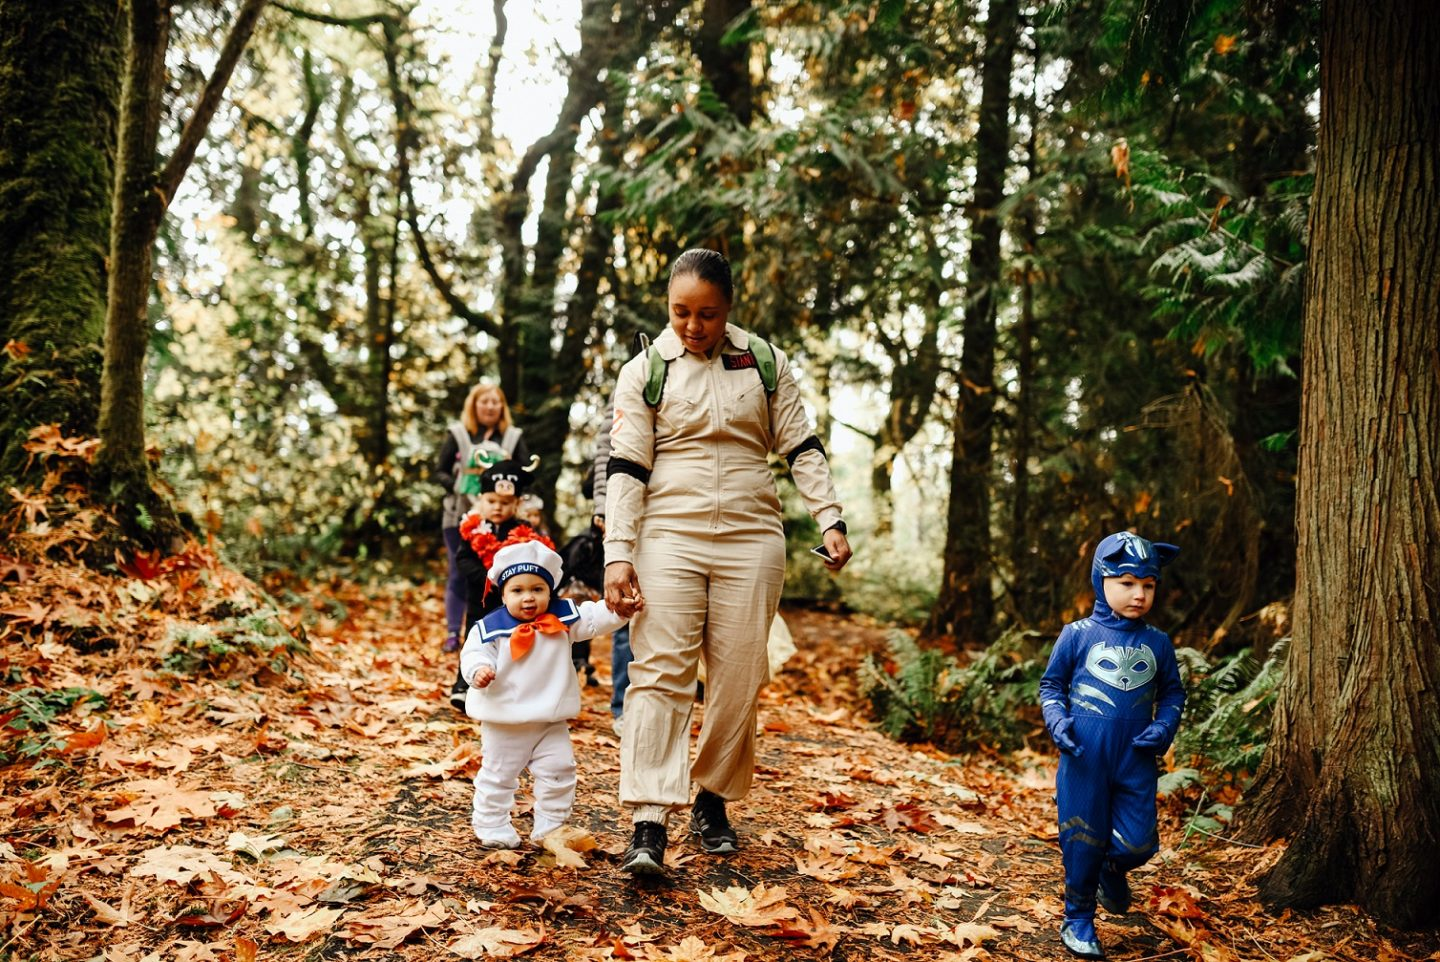 Optoutside by Tamara Johnson for Hike it Baby